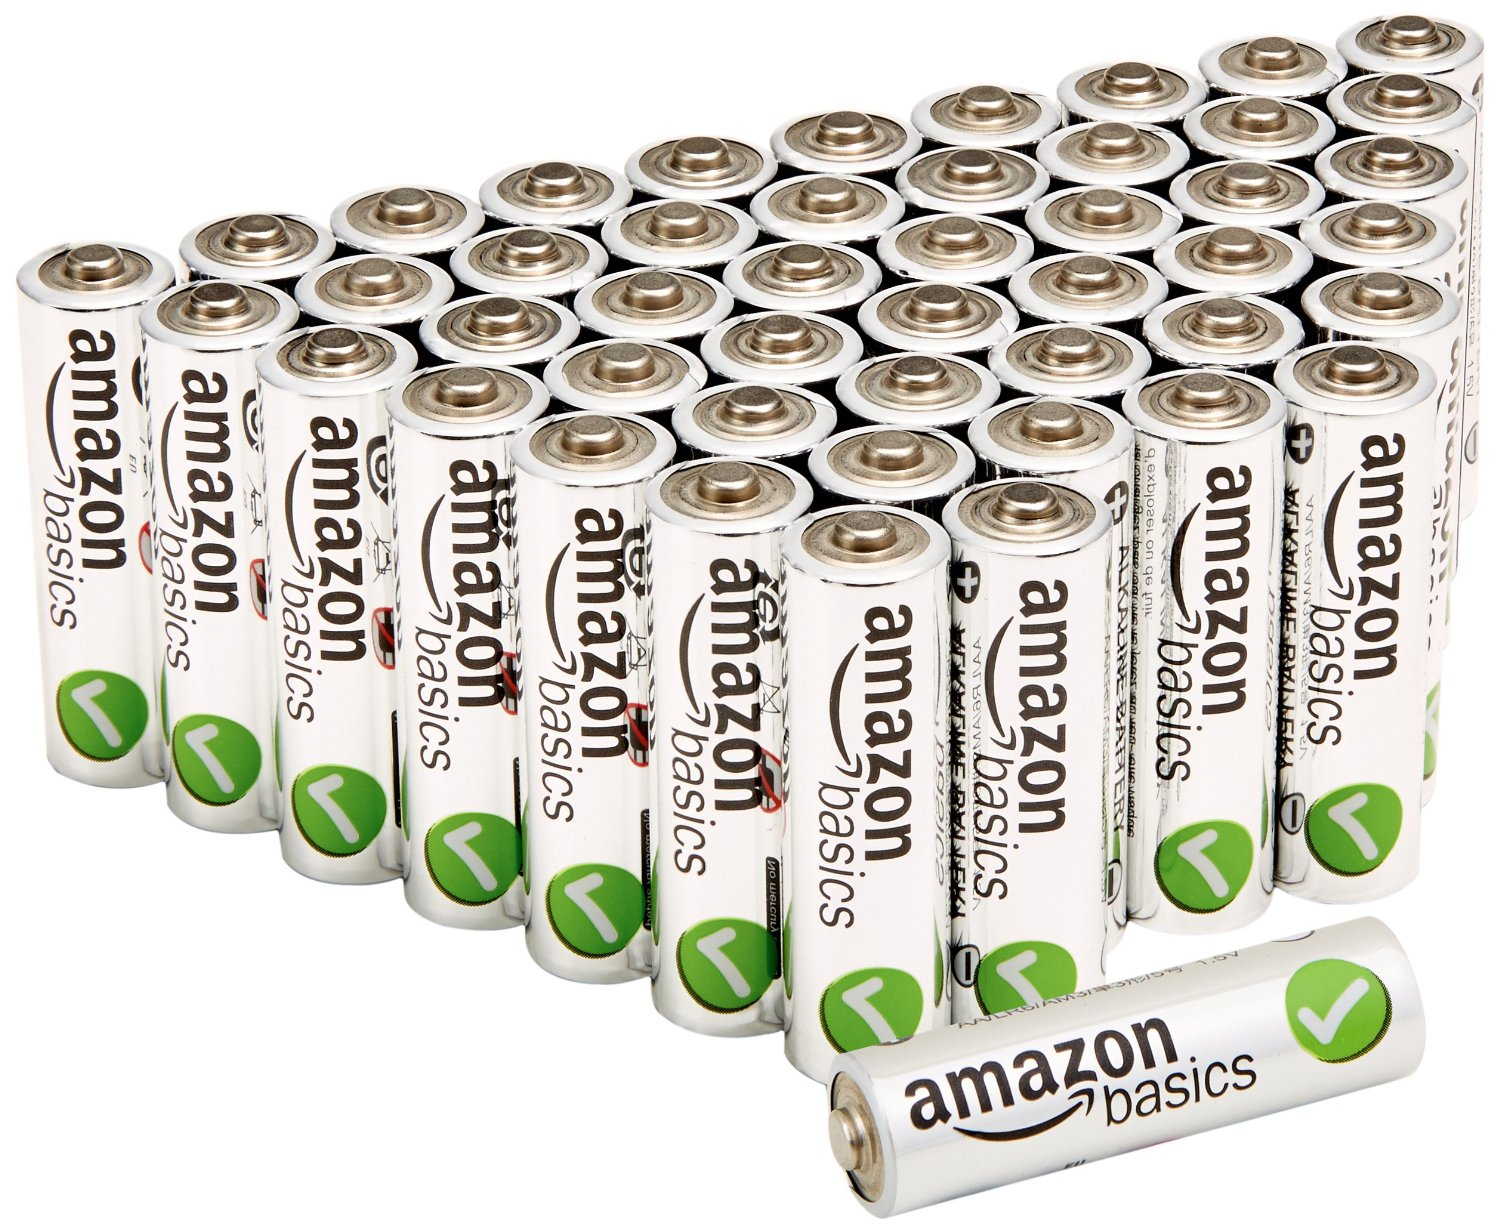 Copy of Amazon Alkaline Batteries